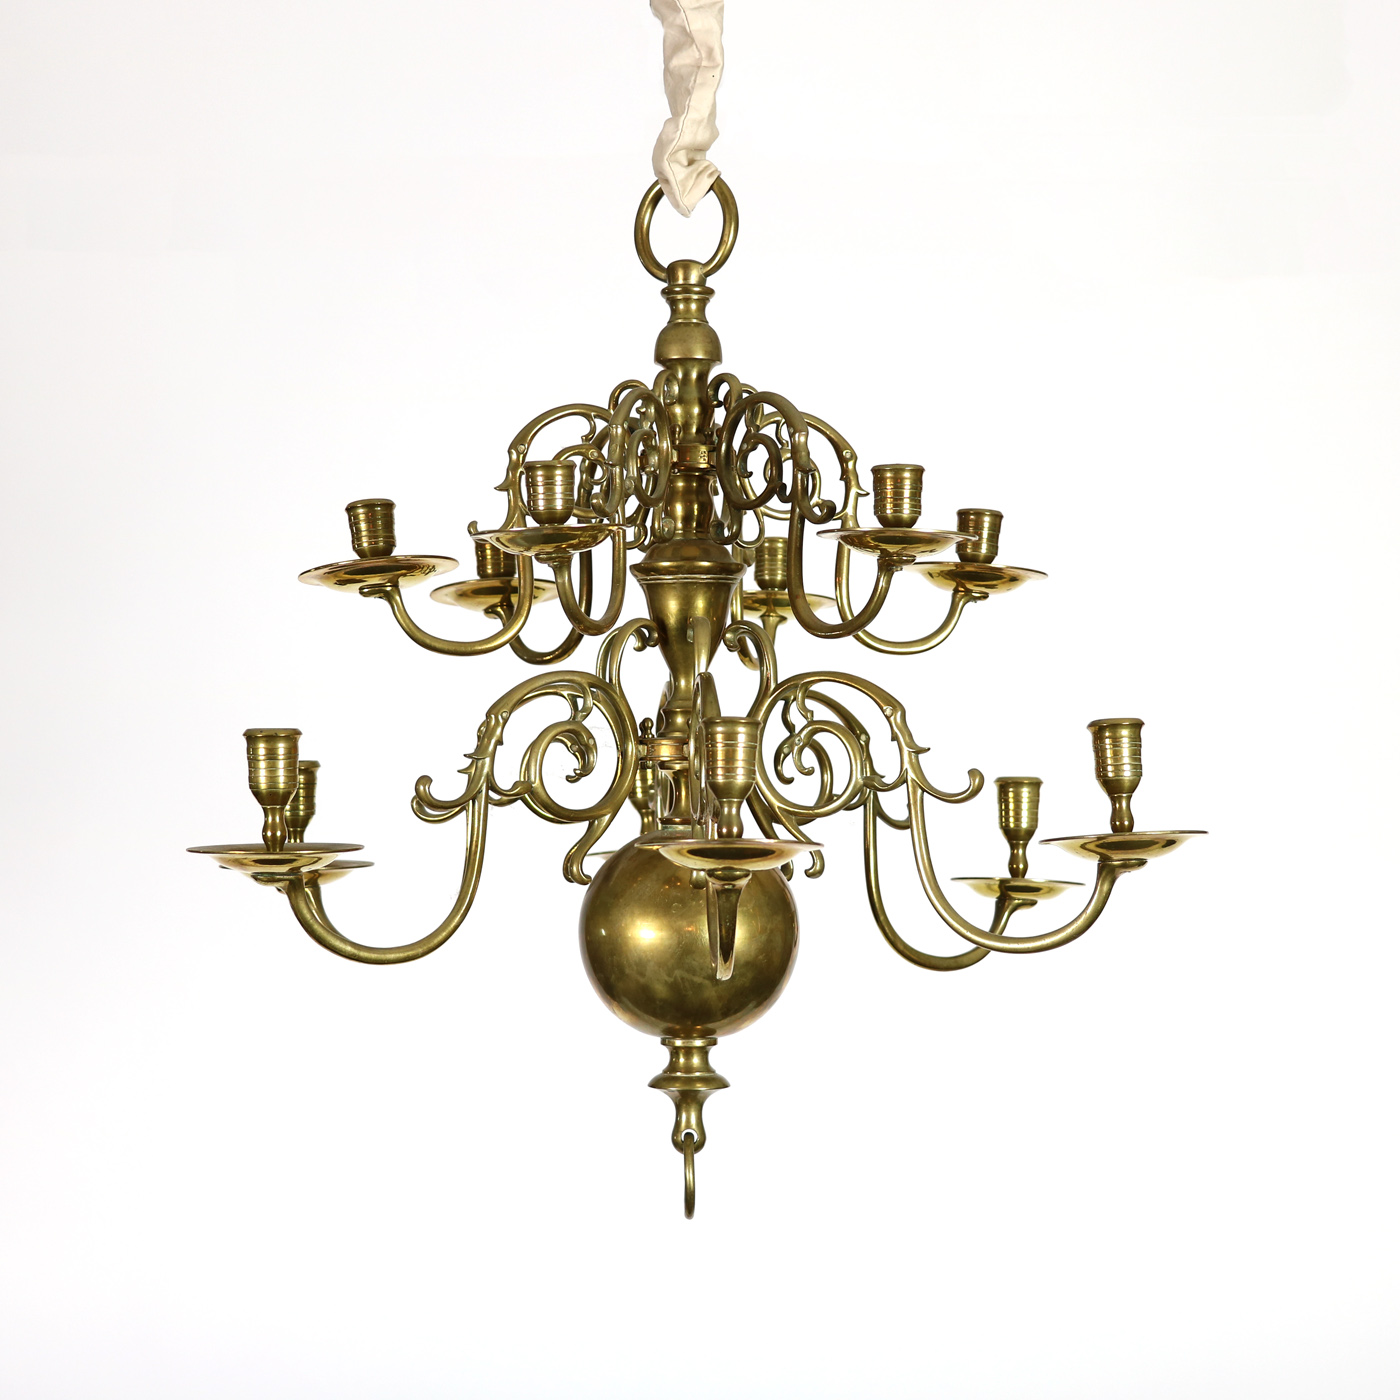 Two tiered twelve light dutch brass chandelier 19th century garden court antiques small scale 12 light dutch brass chandelier holland circa 1880 aloadofball